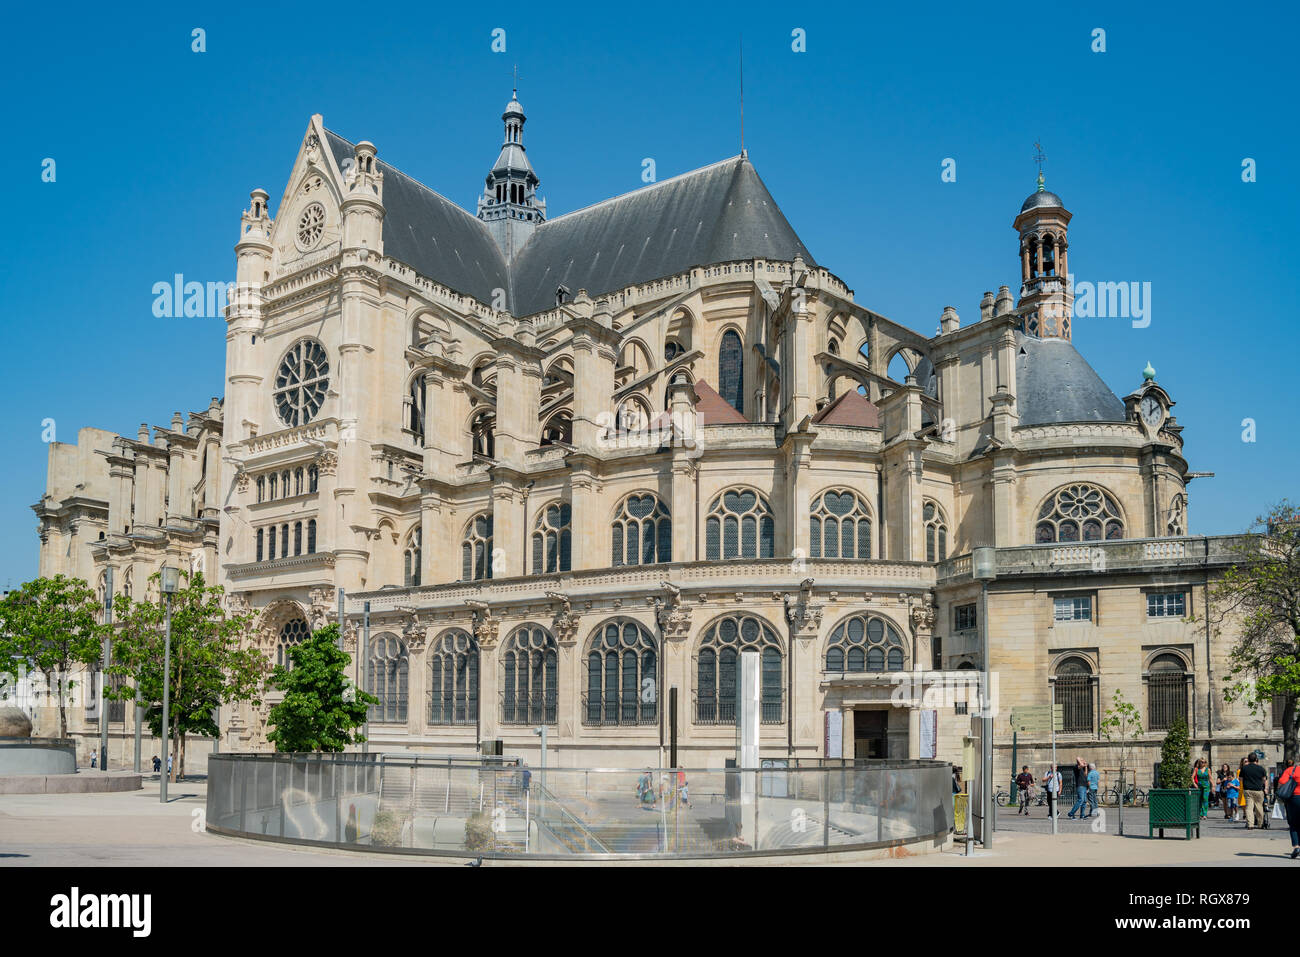 France, MAY 7: Exterior view of the famous Church of St Eustache on MAY 7, 2018 at Paris, France Stock Photo